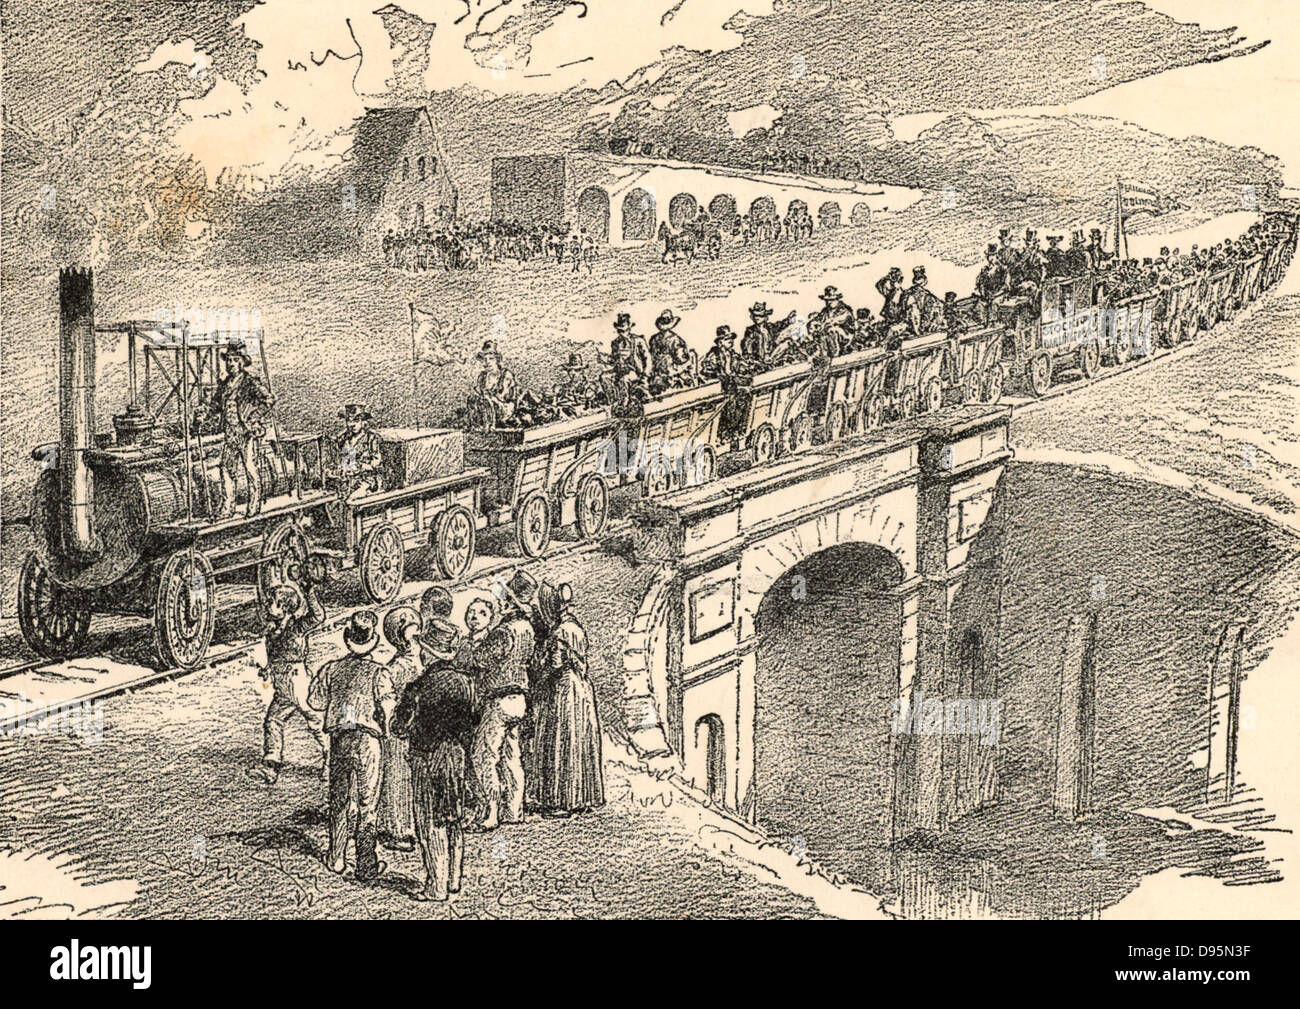 Opening of the Stockton and Darlington Railway, 27 September 1825. The  civil engineer for the line was George Stephenson